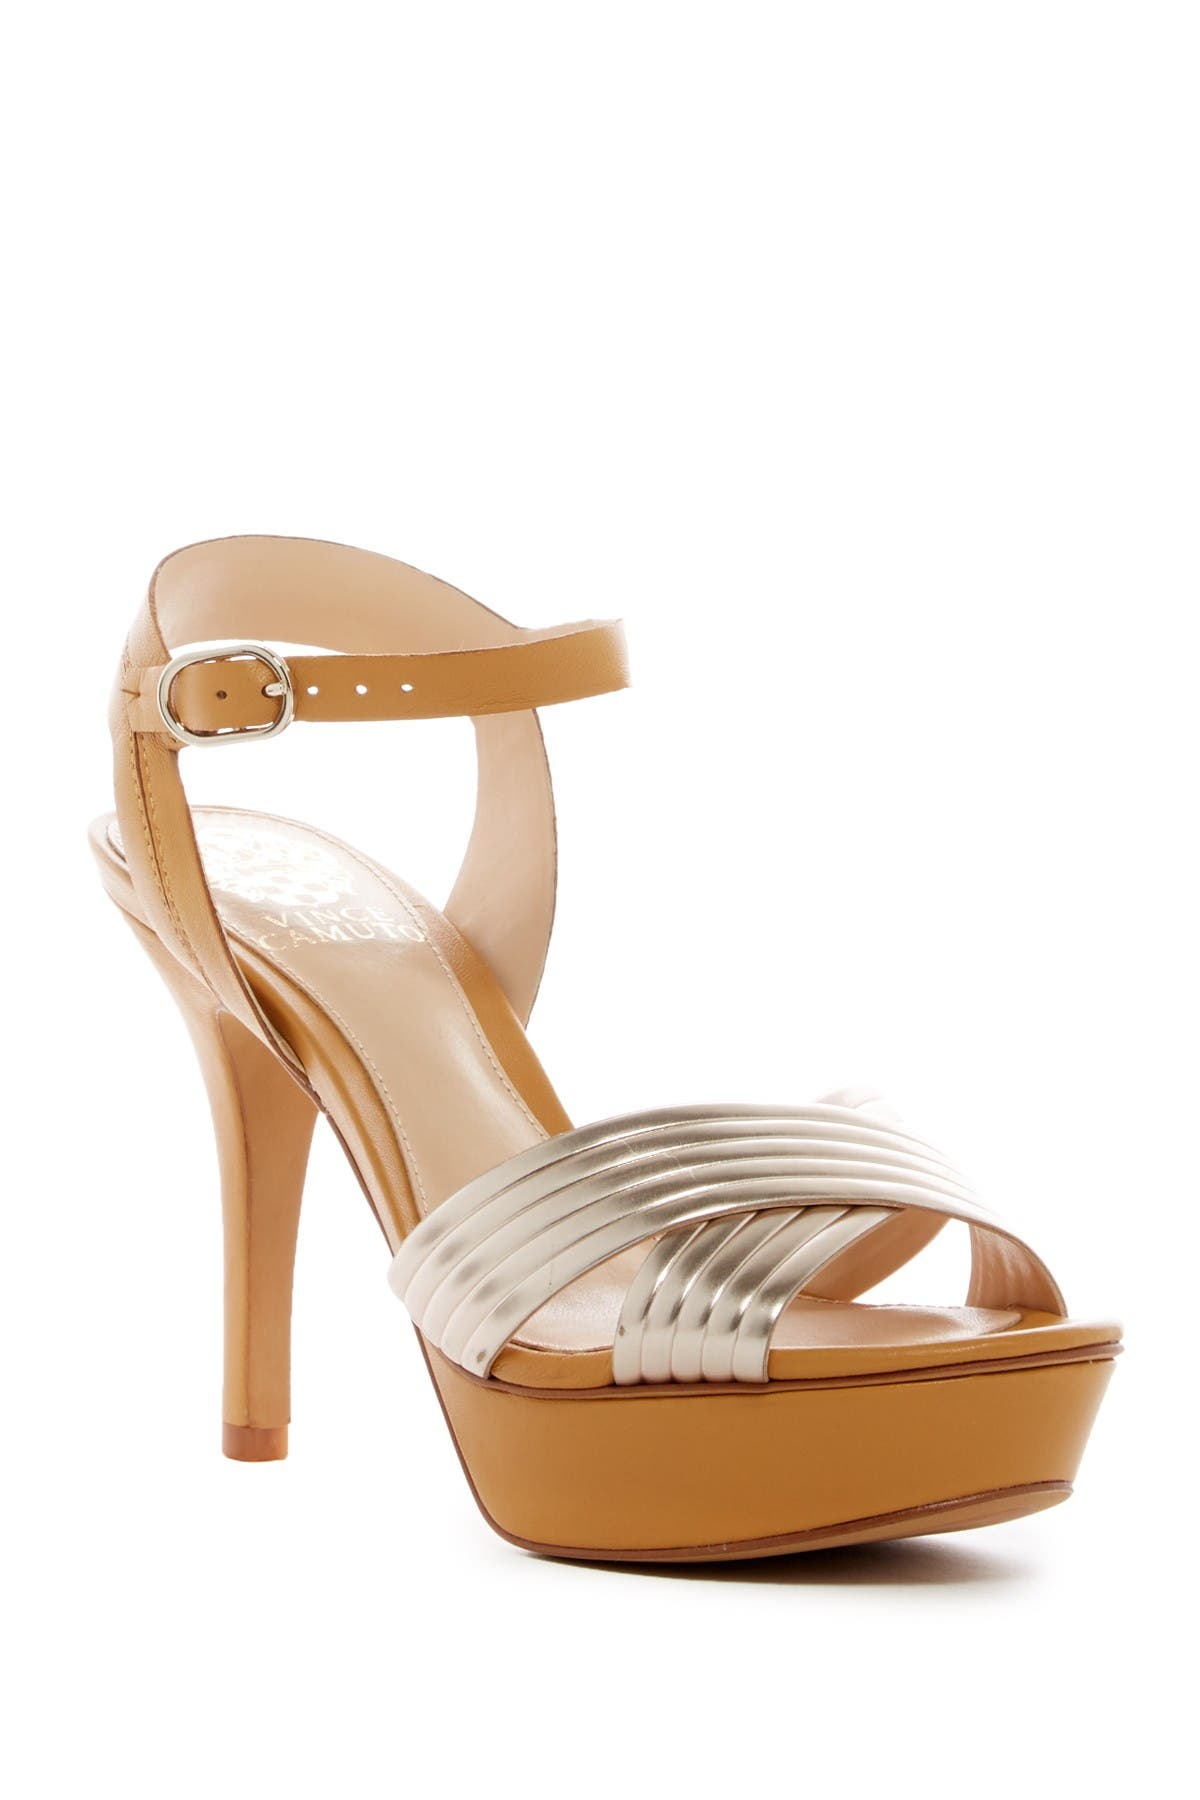 Image of Vince Camuto Pascale Platform Sandal - Wide Width Available